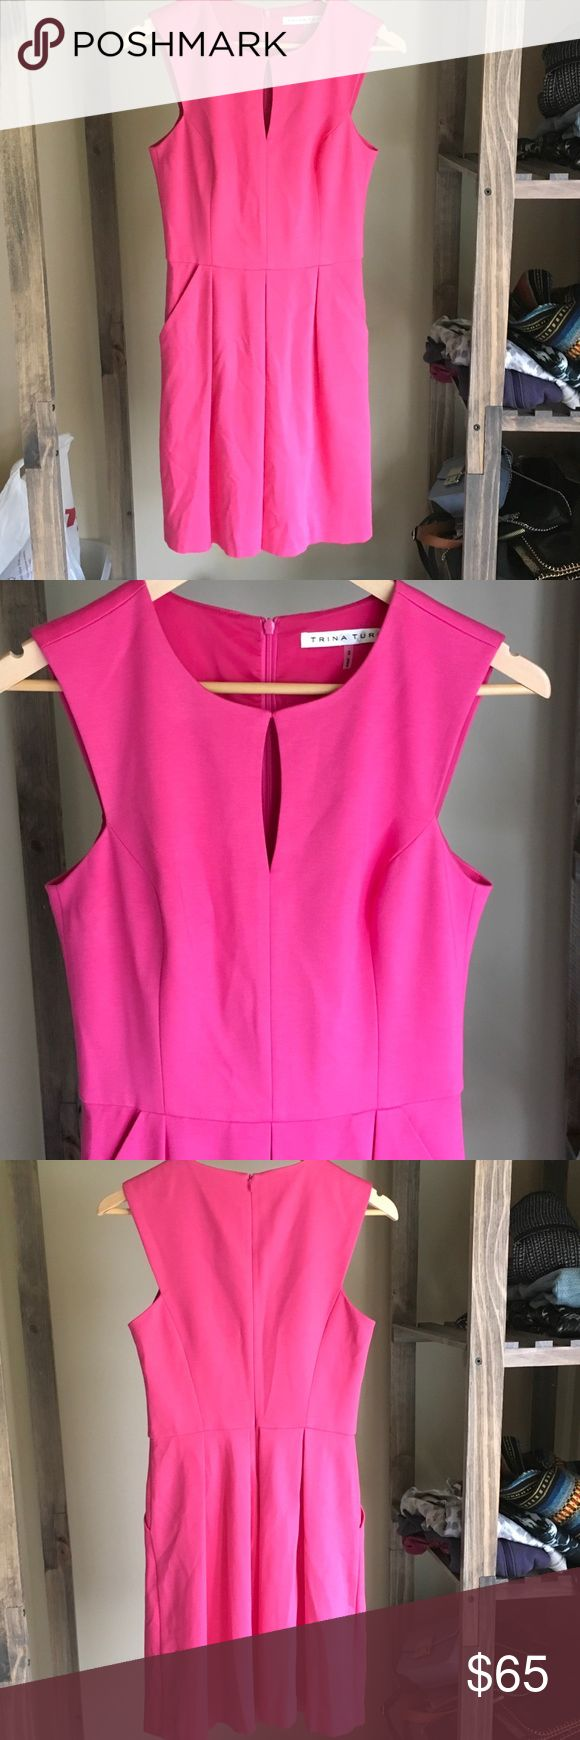 """⚠️Low Ball Sale⚠️ Pink Trina Turk dress Pretty pink dress from Trina Turk.  Pockets on the sides, cutout at the top and a zipper down the back.  Wrinkled from storage but in excellent condition.  Size 2.  Fully lined and measures 36"""" long. Trina Turk Dresses"""